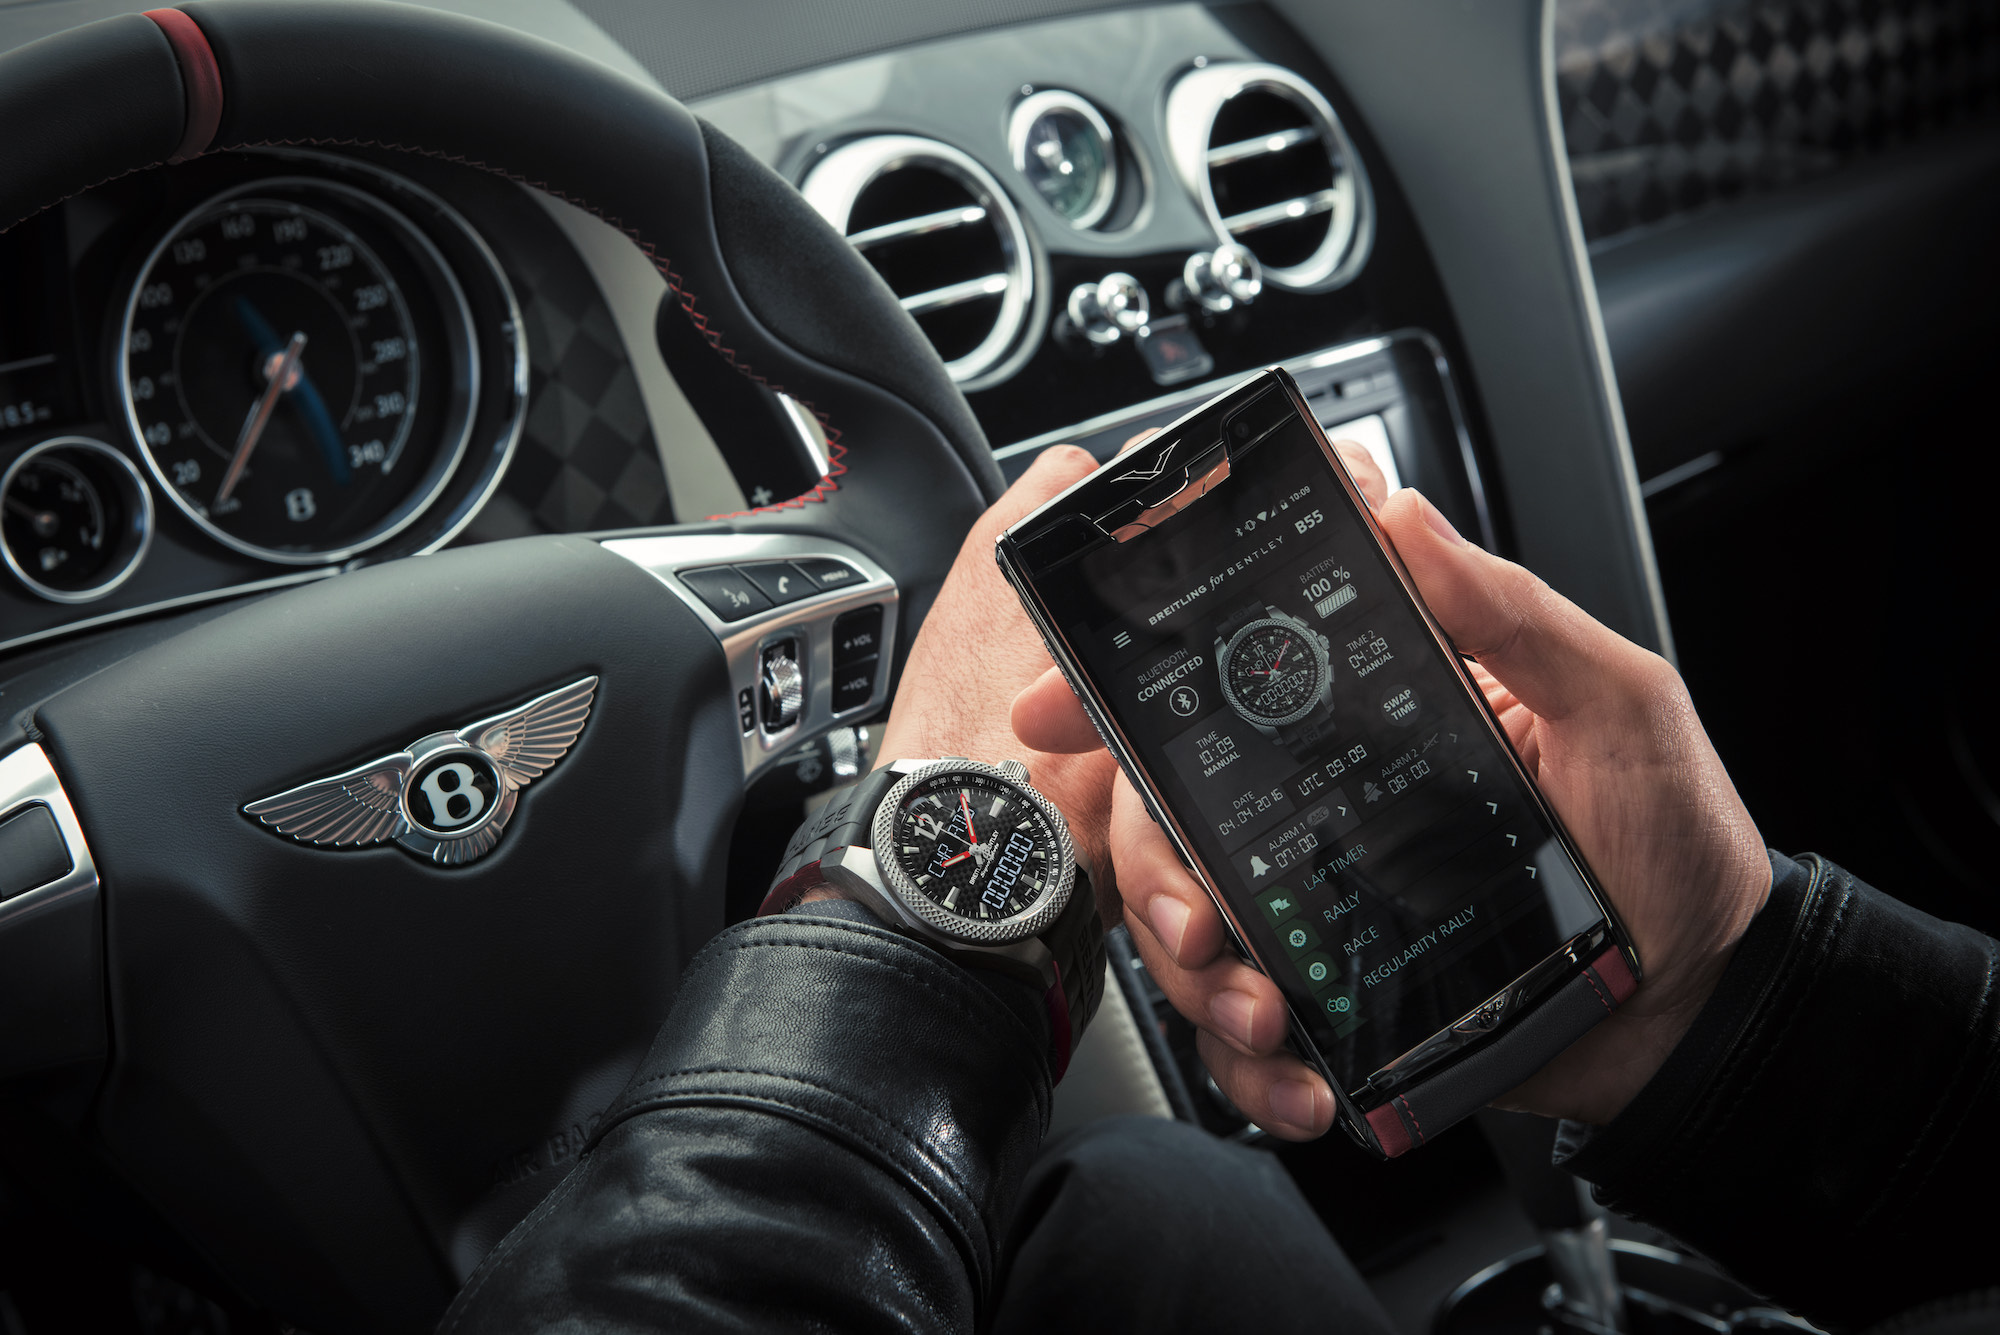 The Bentley x Vertu phone